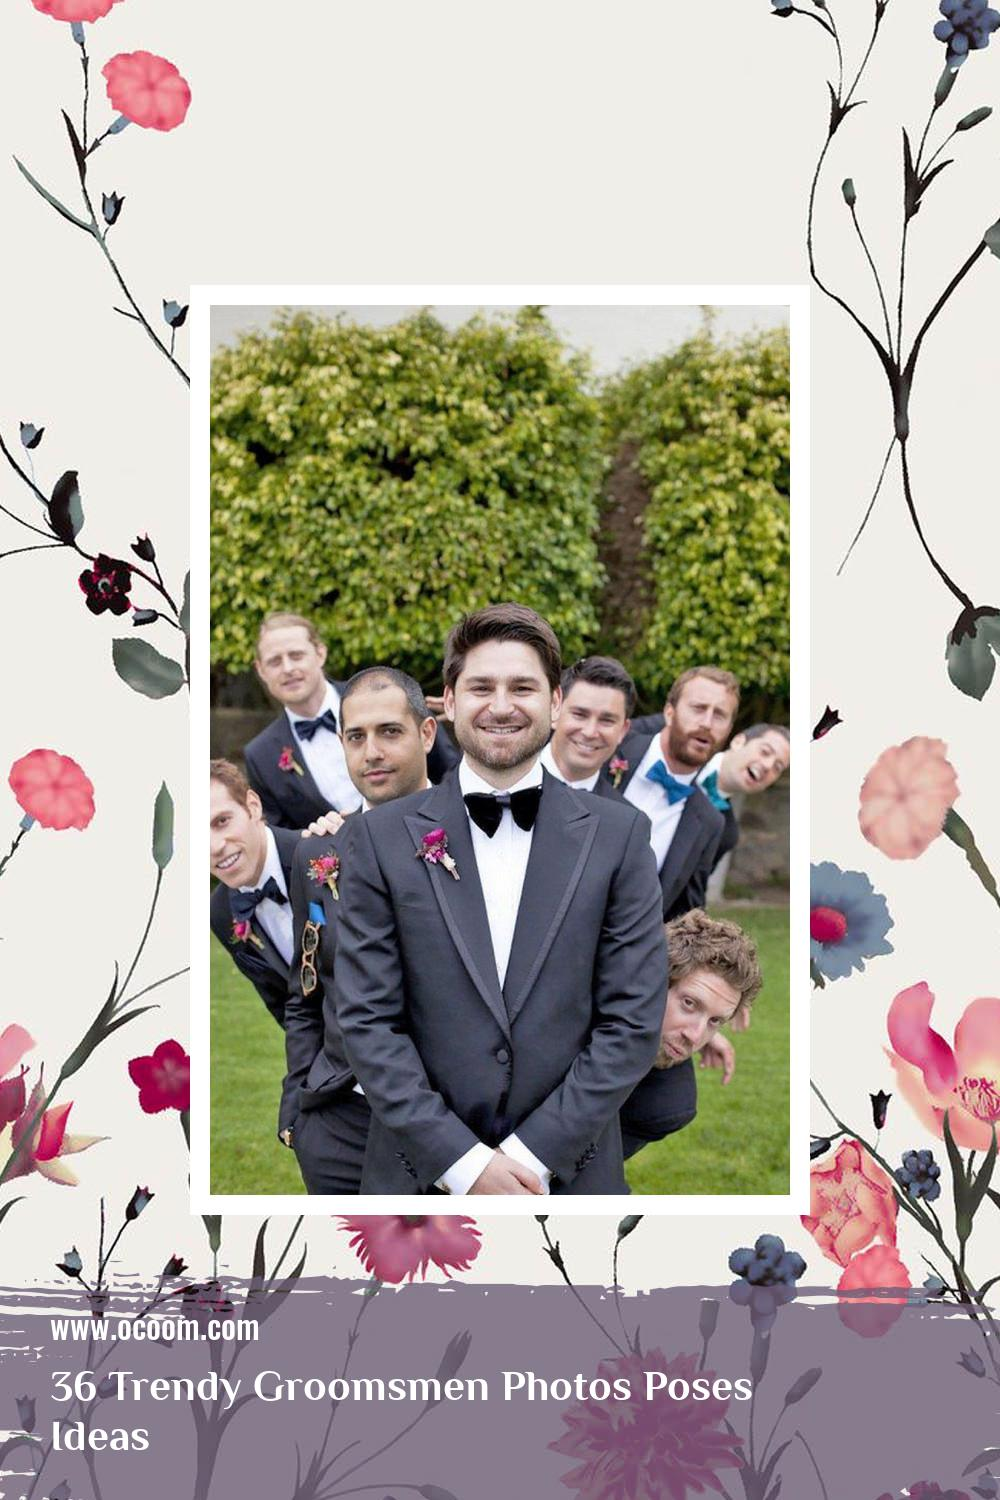 36 Trendy Groomsmen Photos Poses Ideas 3